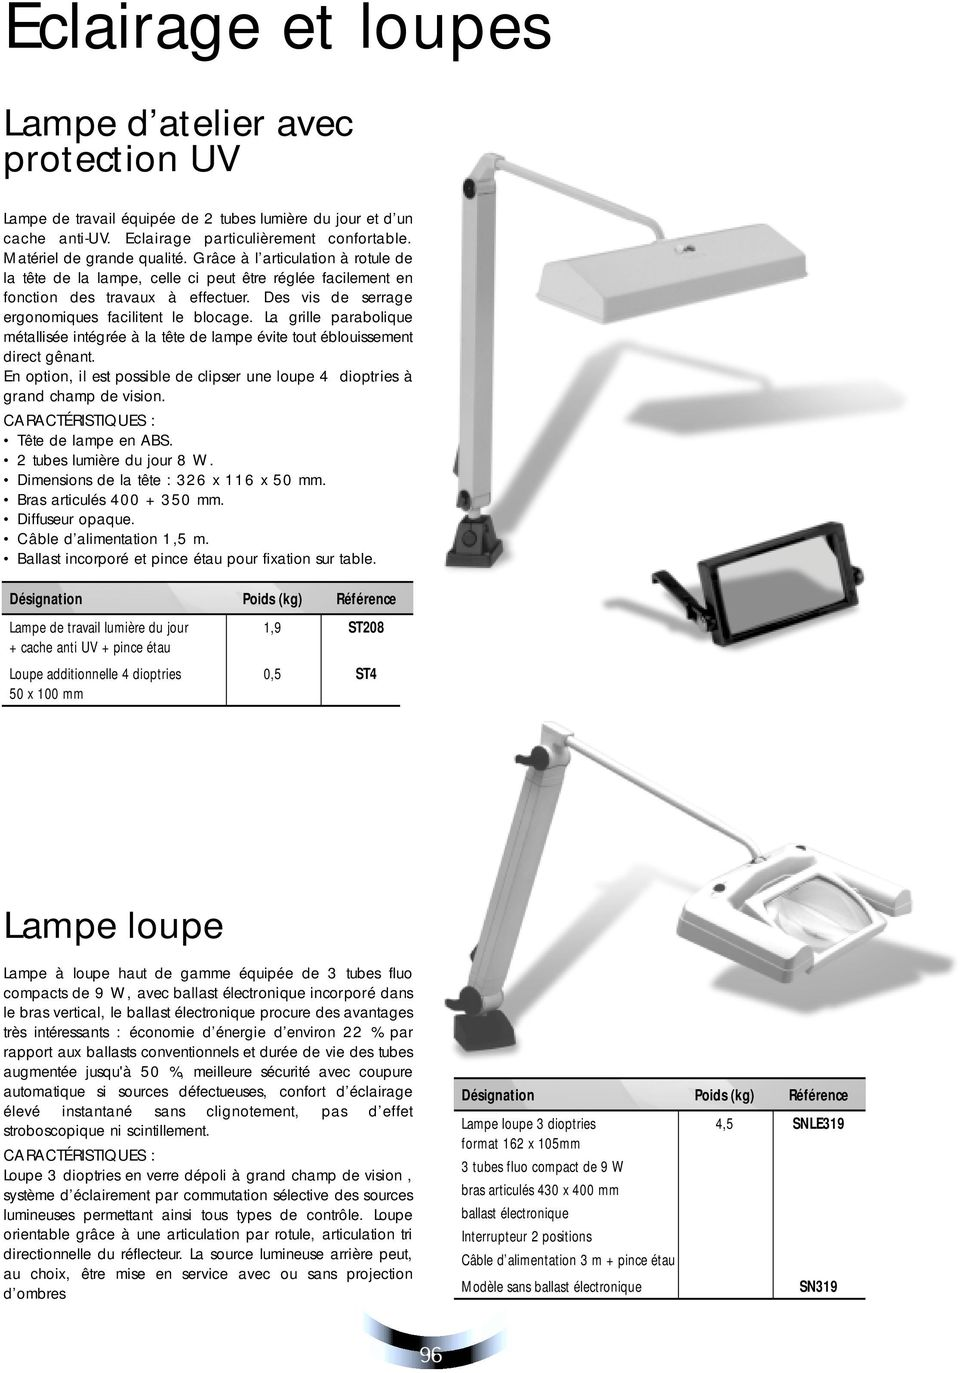 La grille parabolique métallisée intégrée à la tête de lampe évite tout éblouissement direct gênant. En option, il est possible de clipser une loupe 4 dioptries à grand champ de vision.